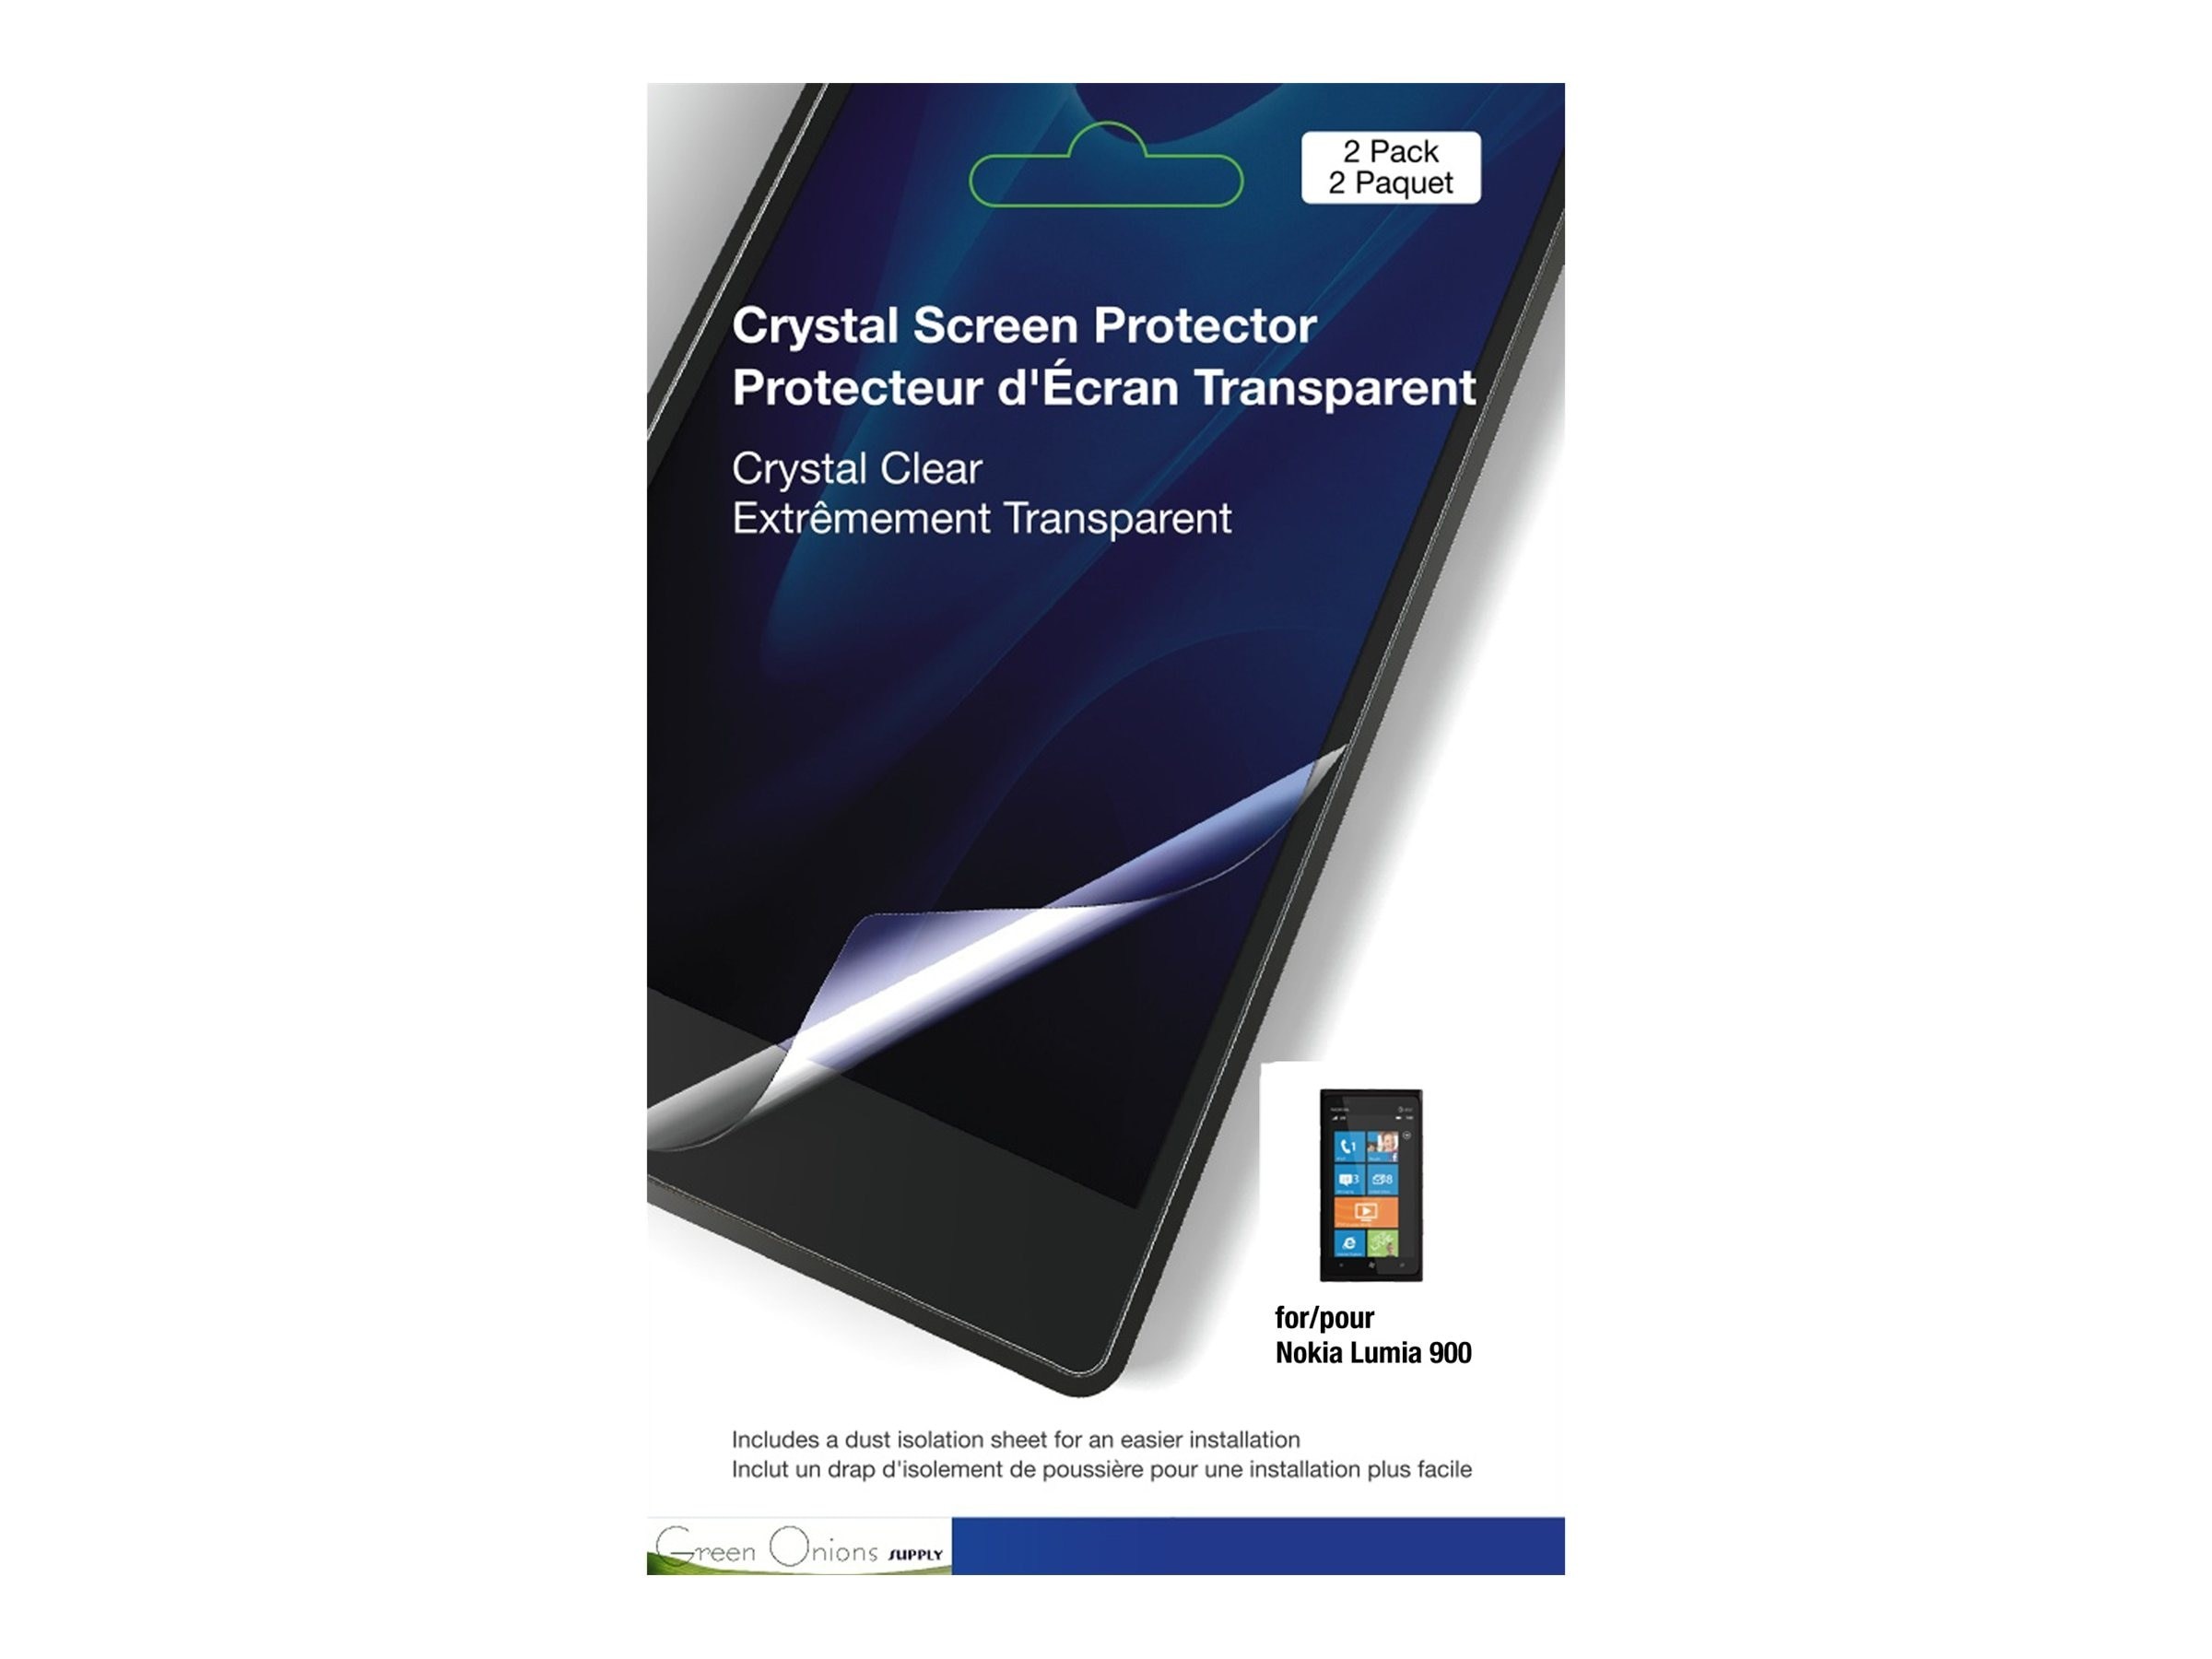 Green Onions Supply Crystal Screen Protector for Nokia Lumia 900, 2-Pack, RT-SPNL90001, 15204049, Phone Accessories